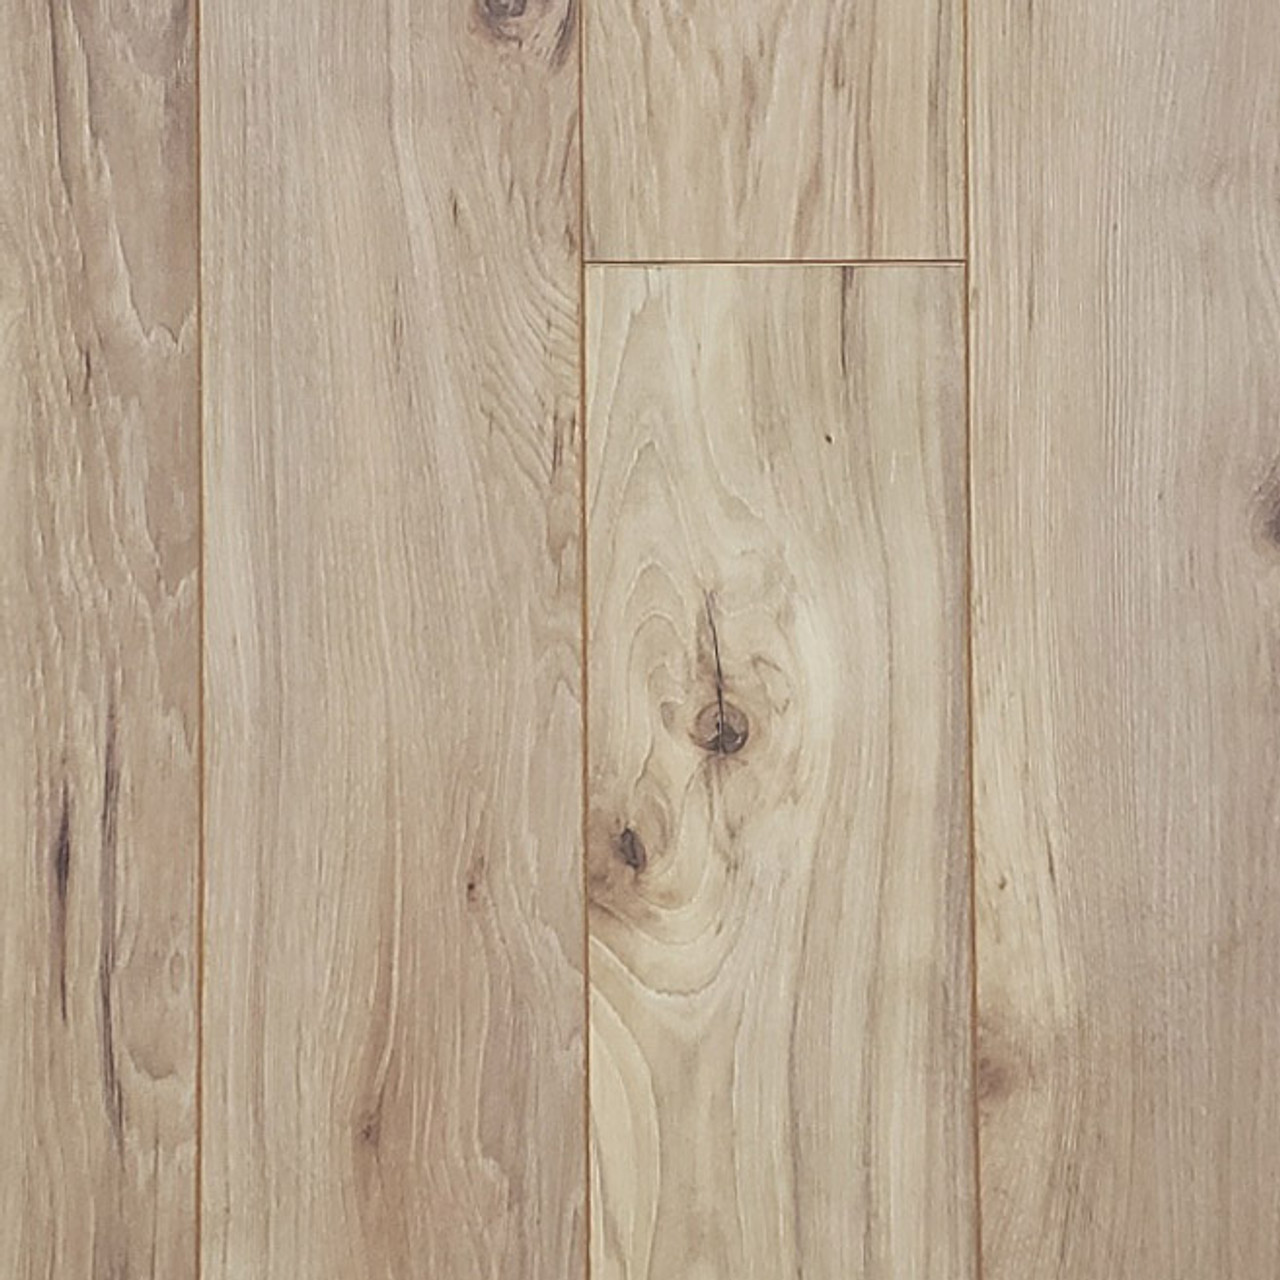 12mm Meadow Hill Hickory Laminate Flooring | 14.13 Sq.Ft. Per Box | Sold by the Box